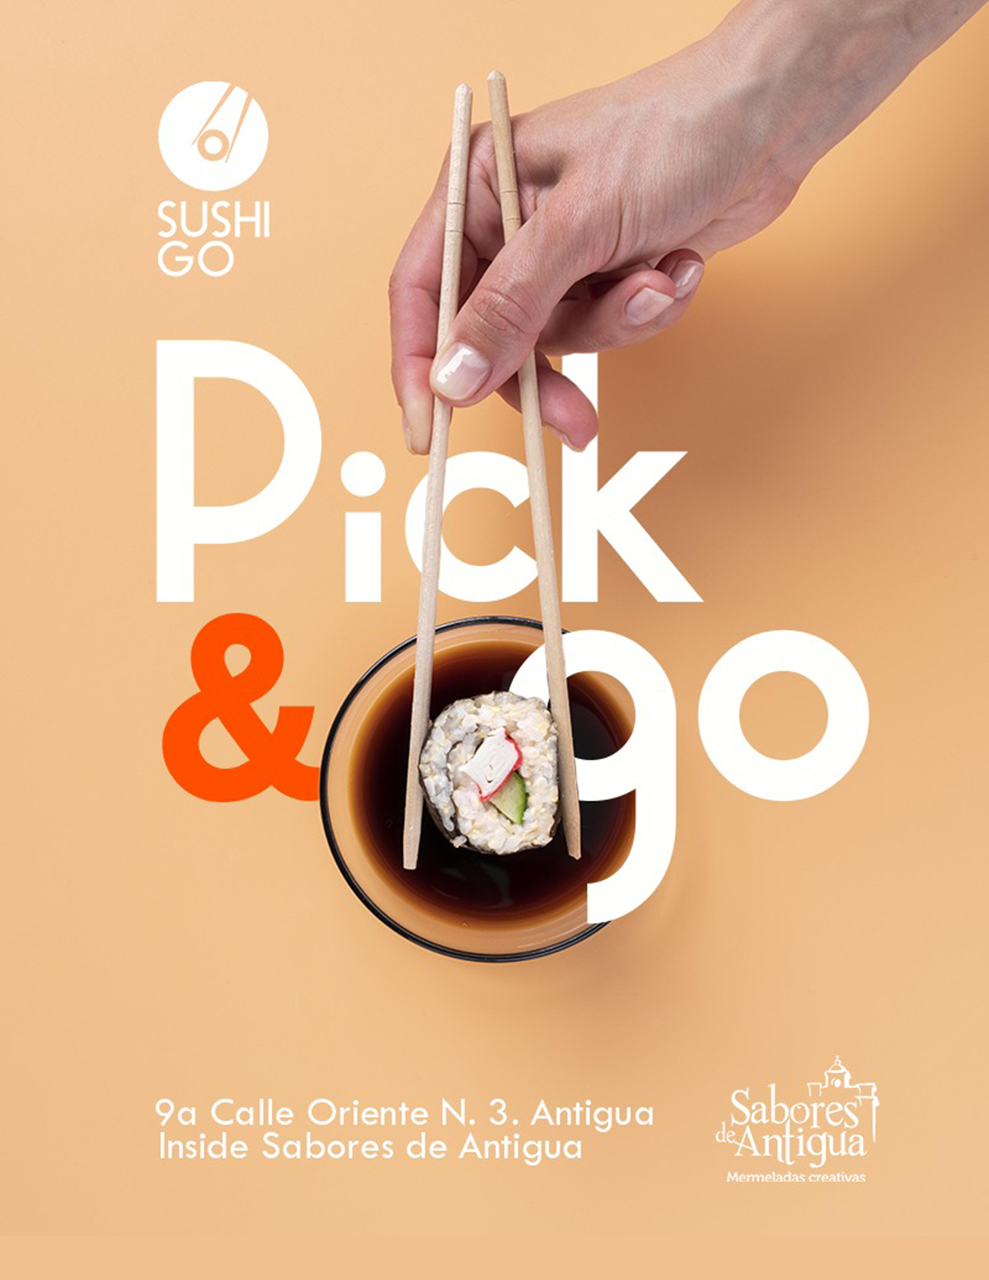 sushi_go_pick_and_go